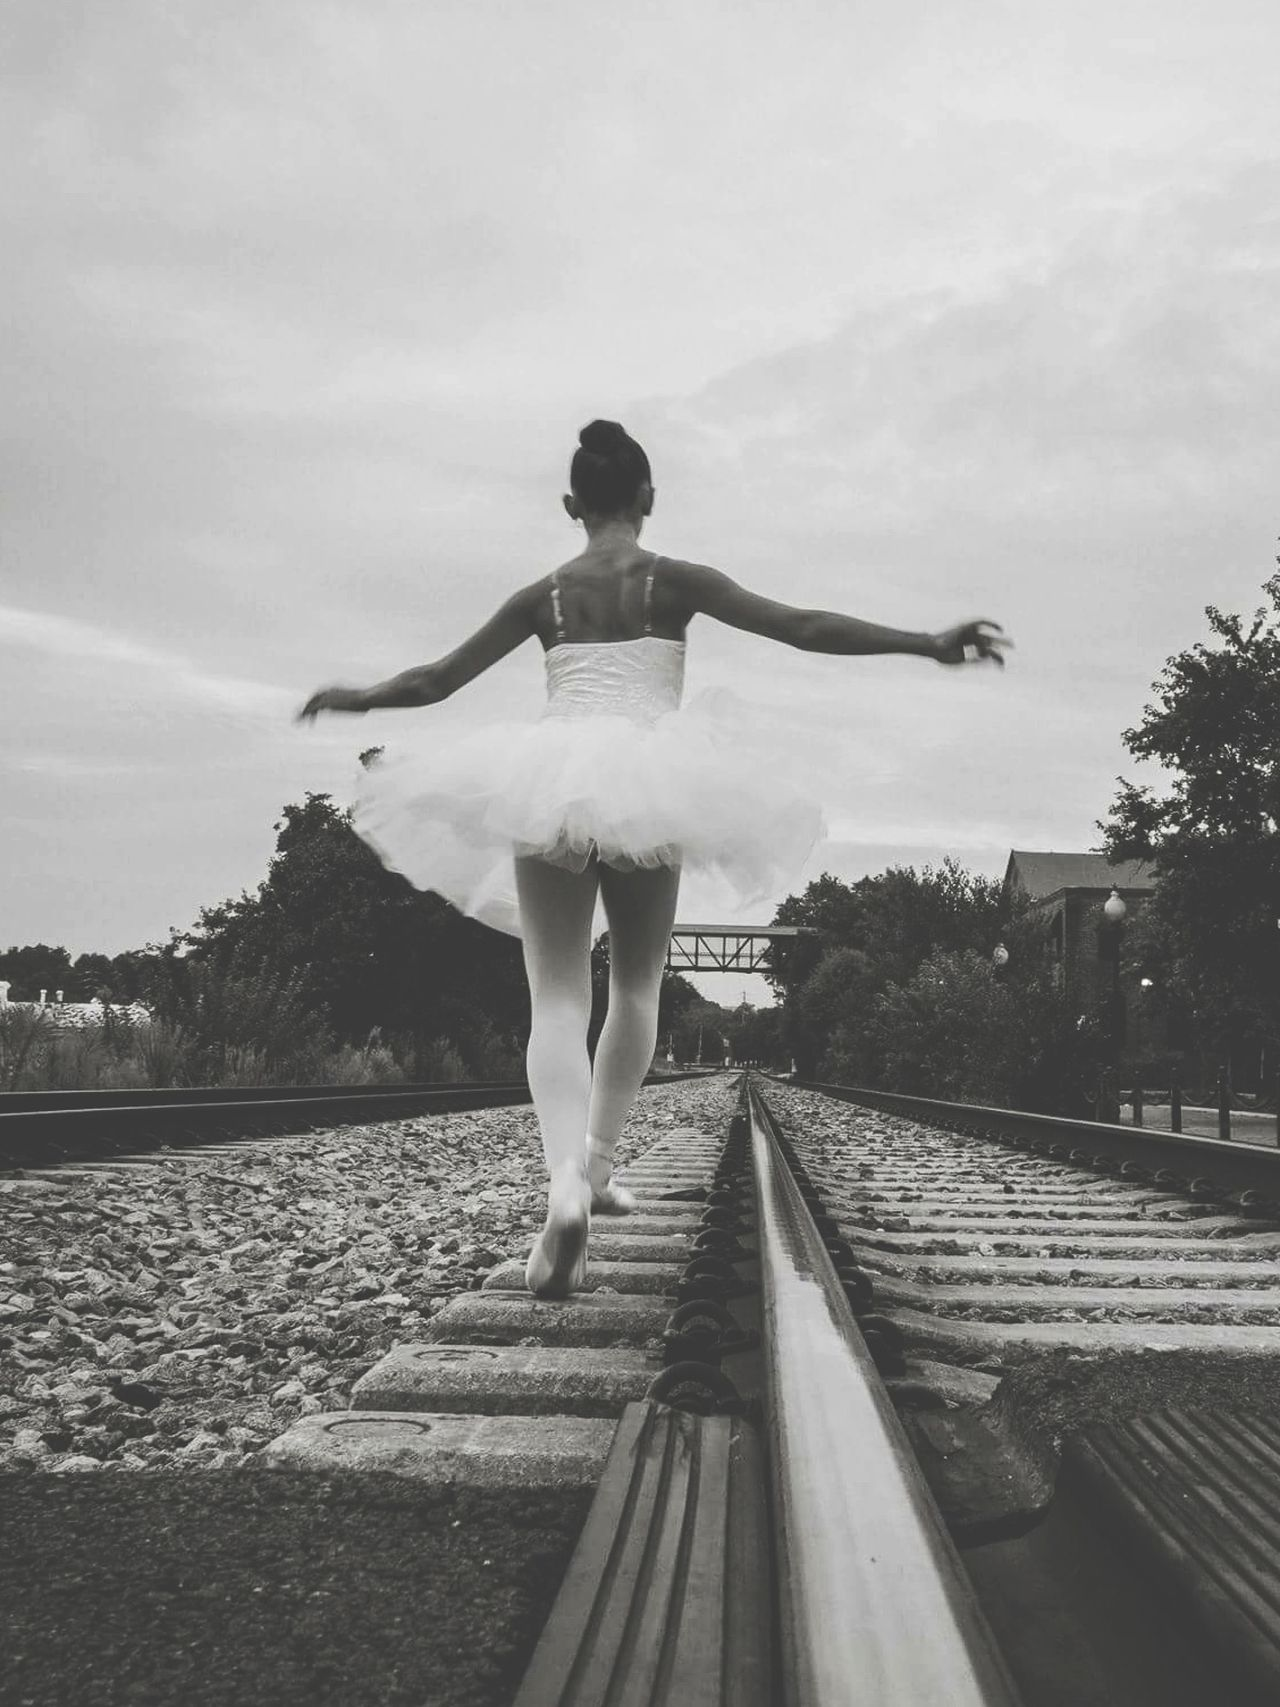 Rails and Pointe - Rear View Women One Person Sky Tree Cloud - Sky Beauty In Nature Outdoors Young Women People Adult Nature Day Adults Only Young Adult Ballerina Ballet Dancer My Daughter ♥ Ballet Shoes Railroad Track Welcome To Black